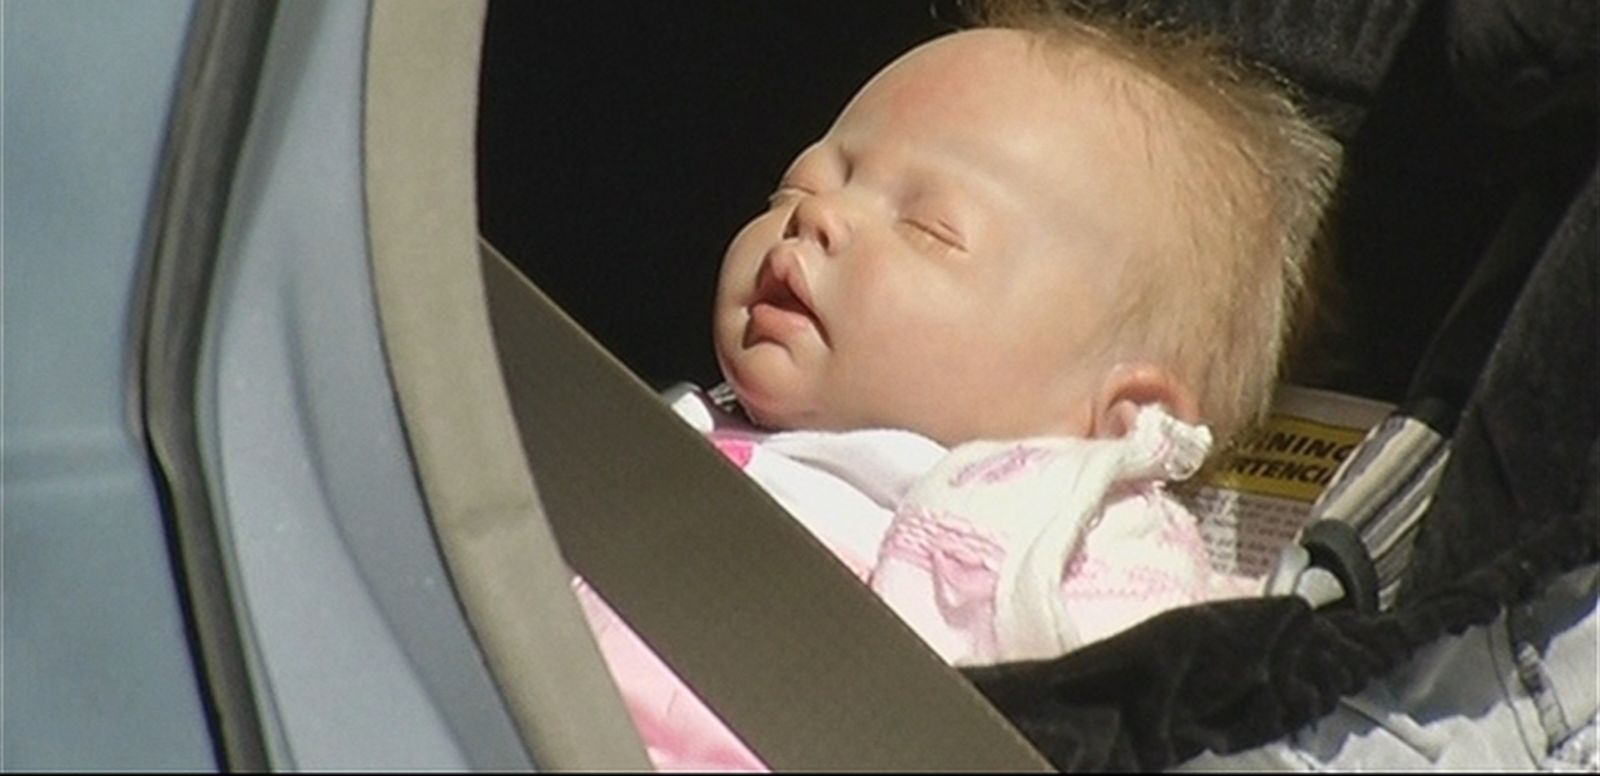 VIDEO: Authorities in Oakland, Calif., smashed the window of a car to save what was found to be a lifelike doll.